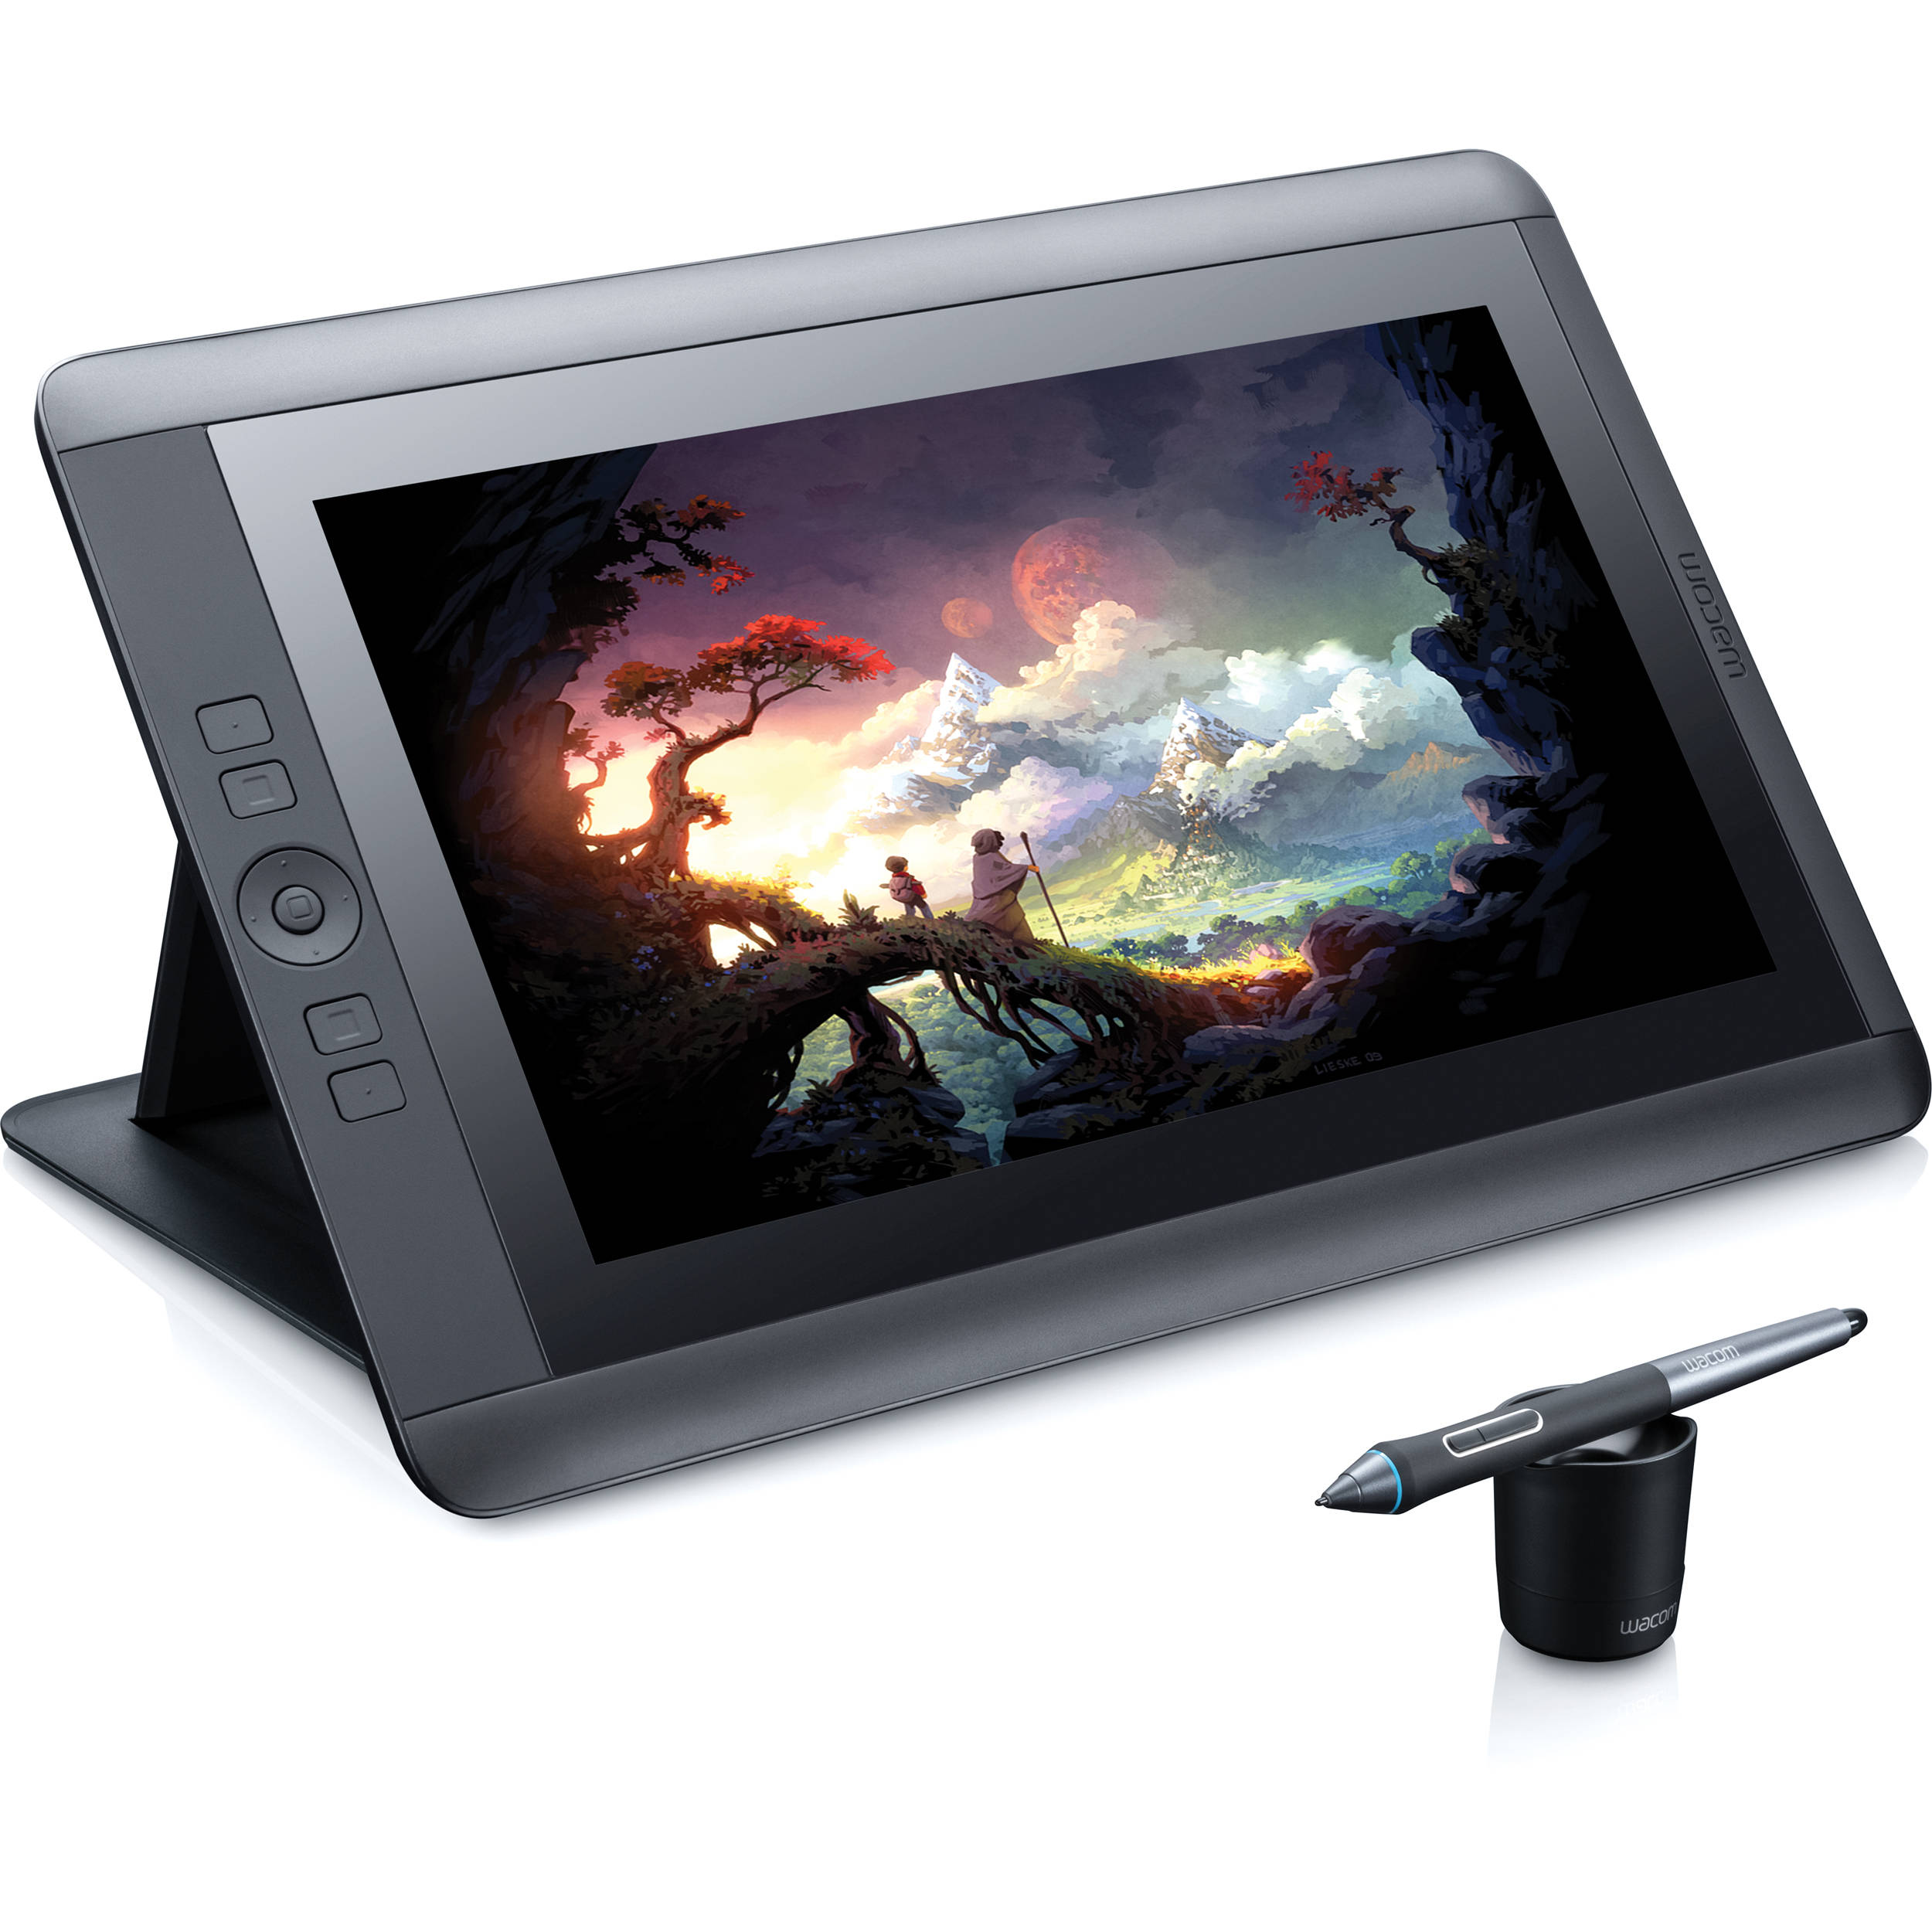 Wacom Cintiq/Intuos Tablet Drivers for Mac Download